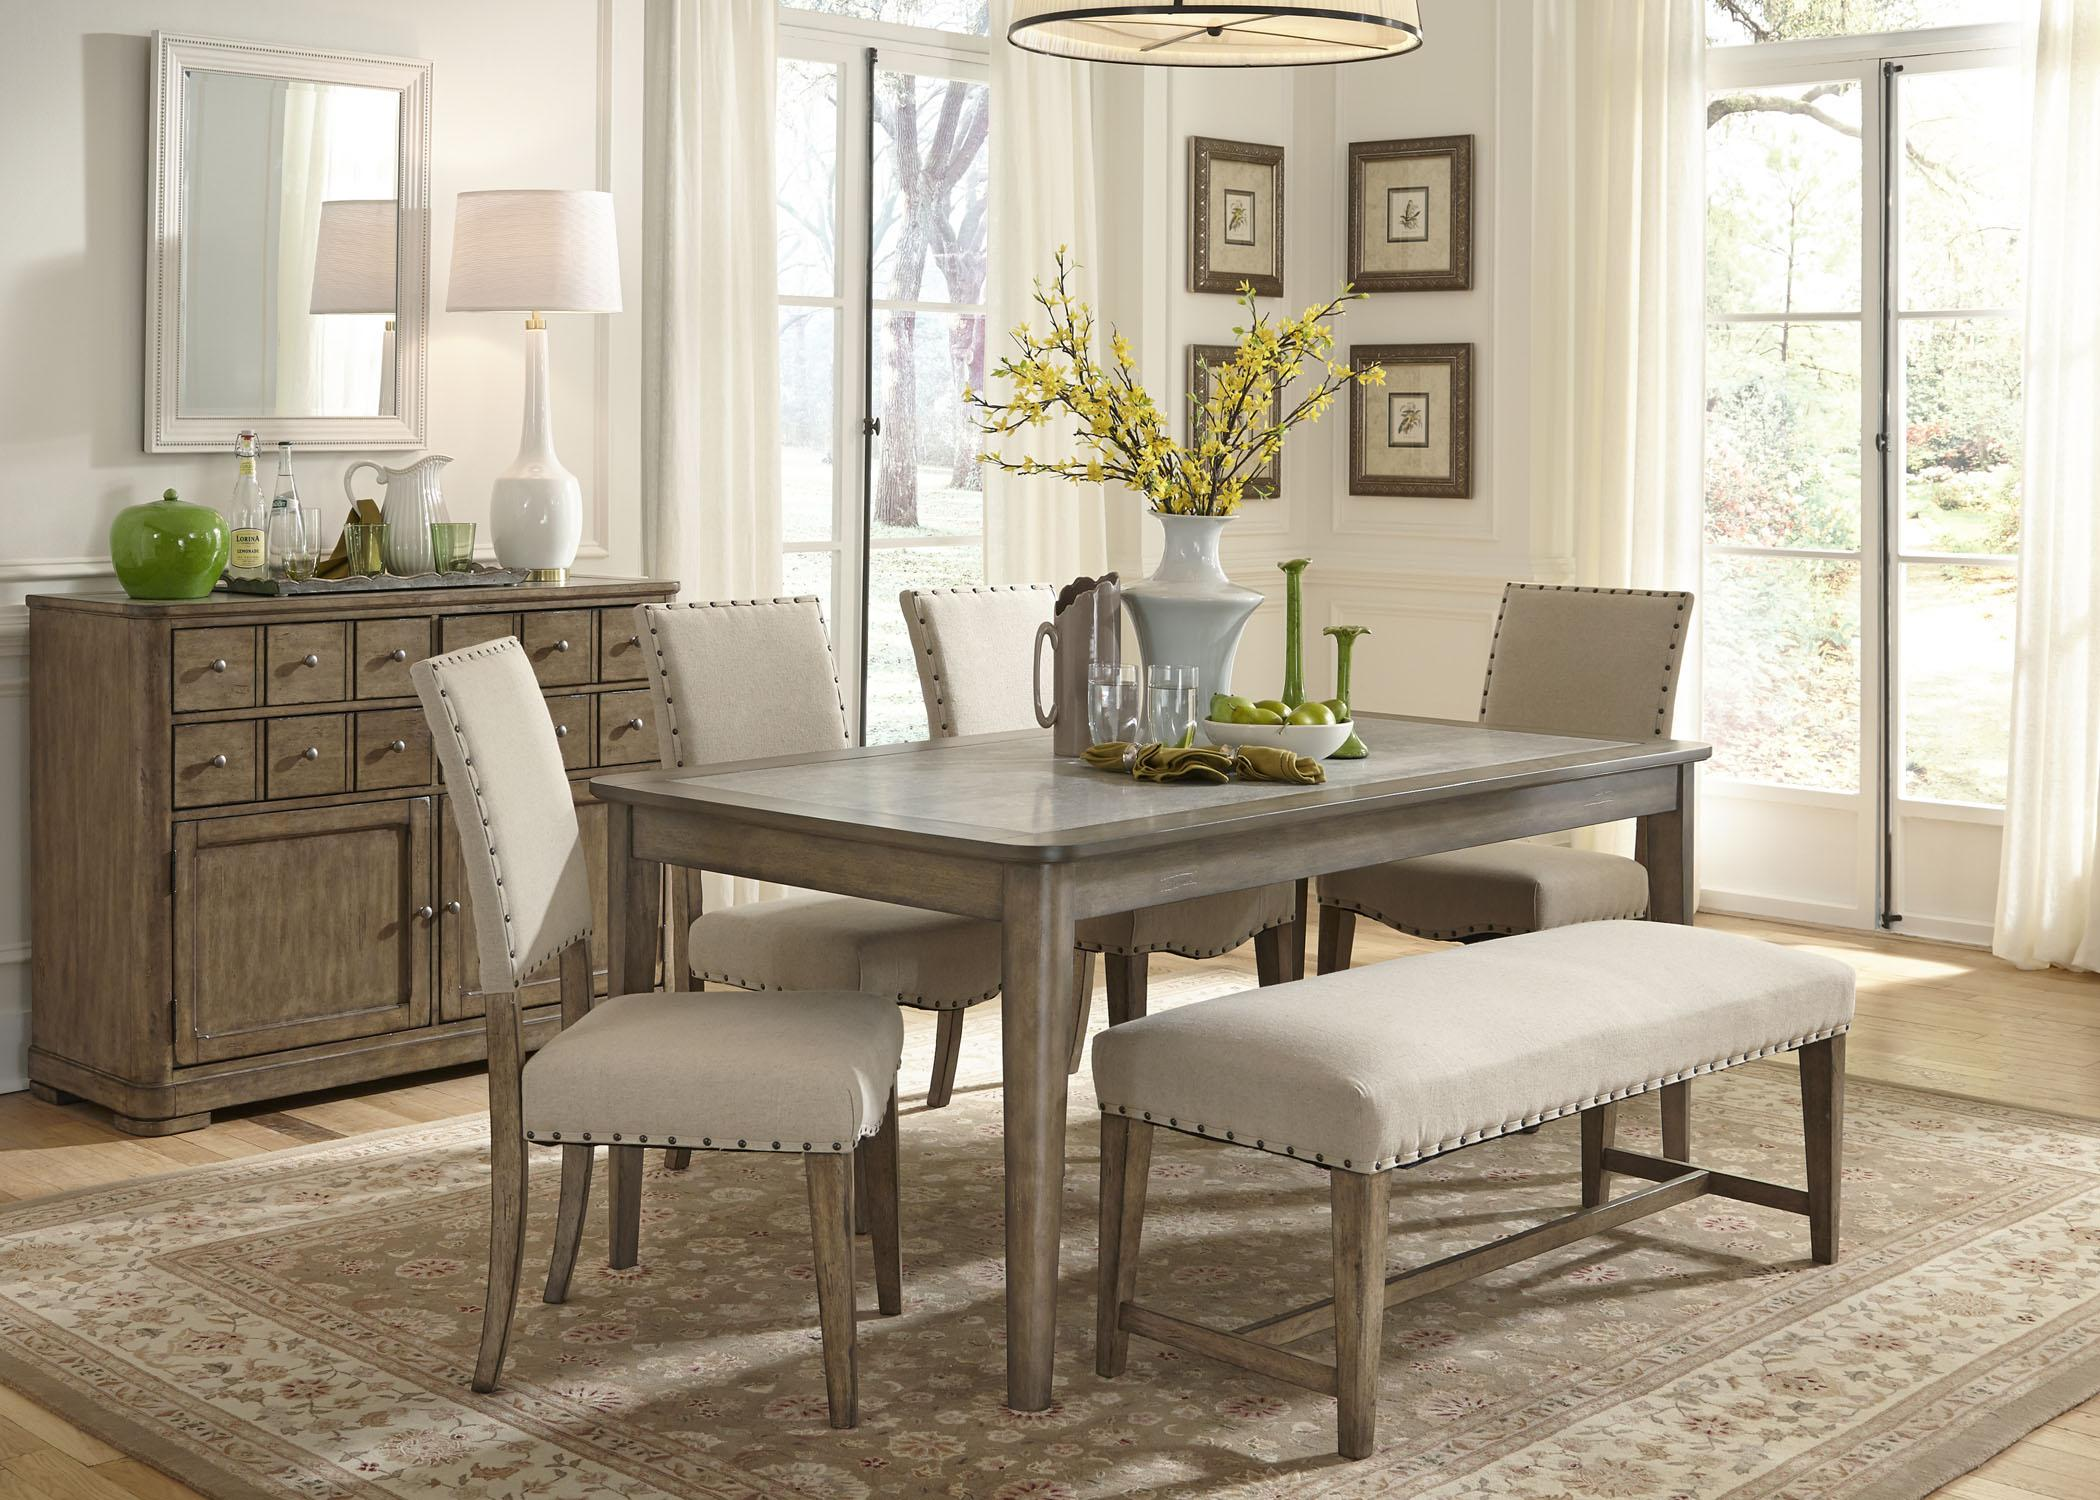 Image Result For Marble Dining Table Set With Bench